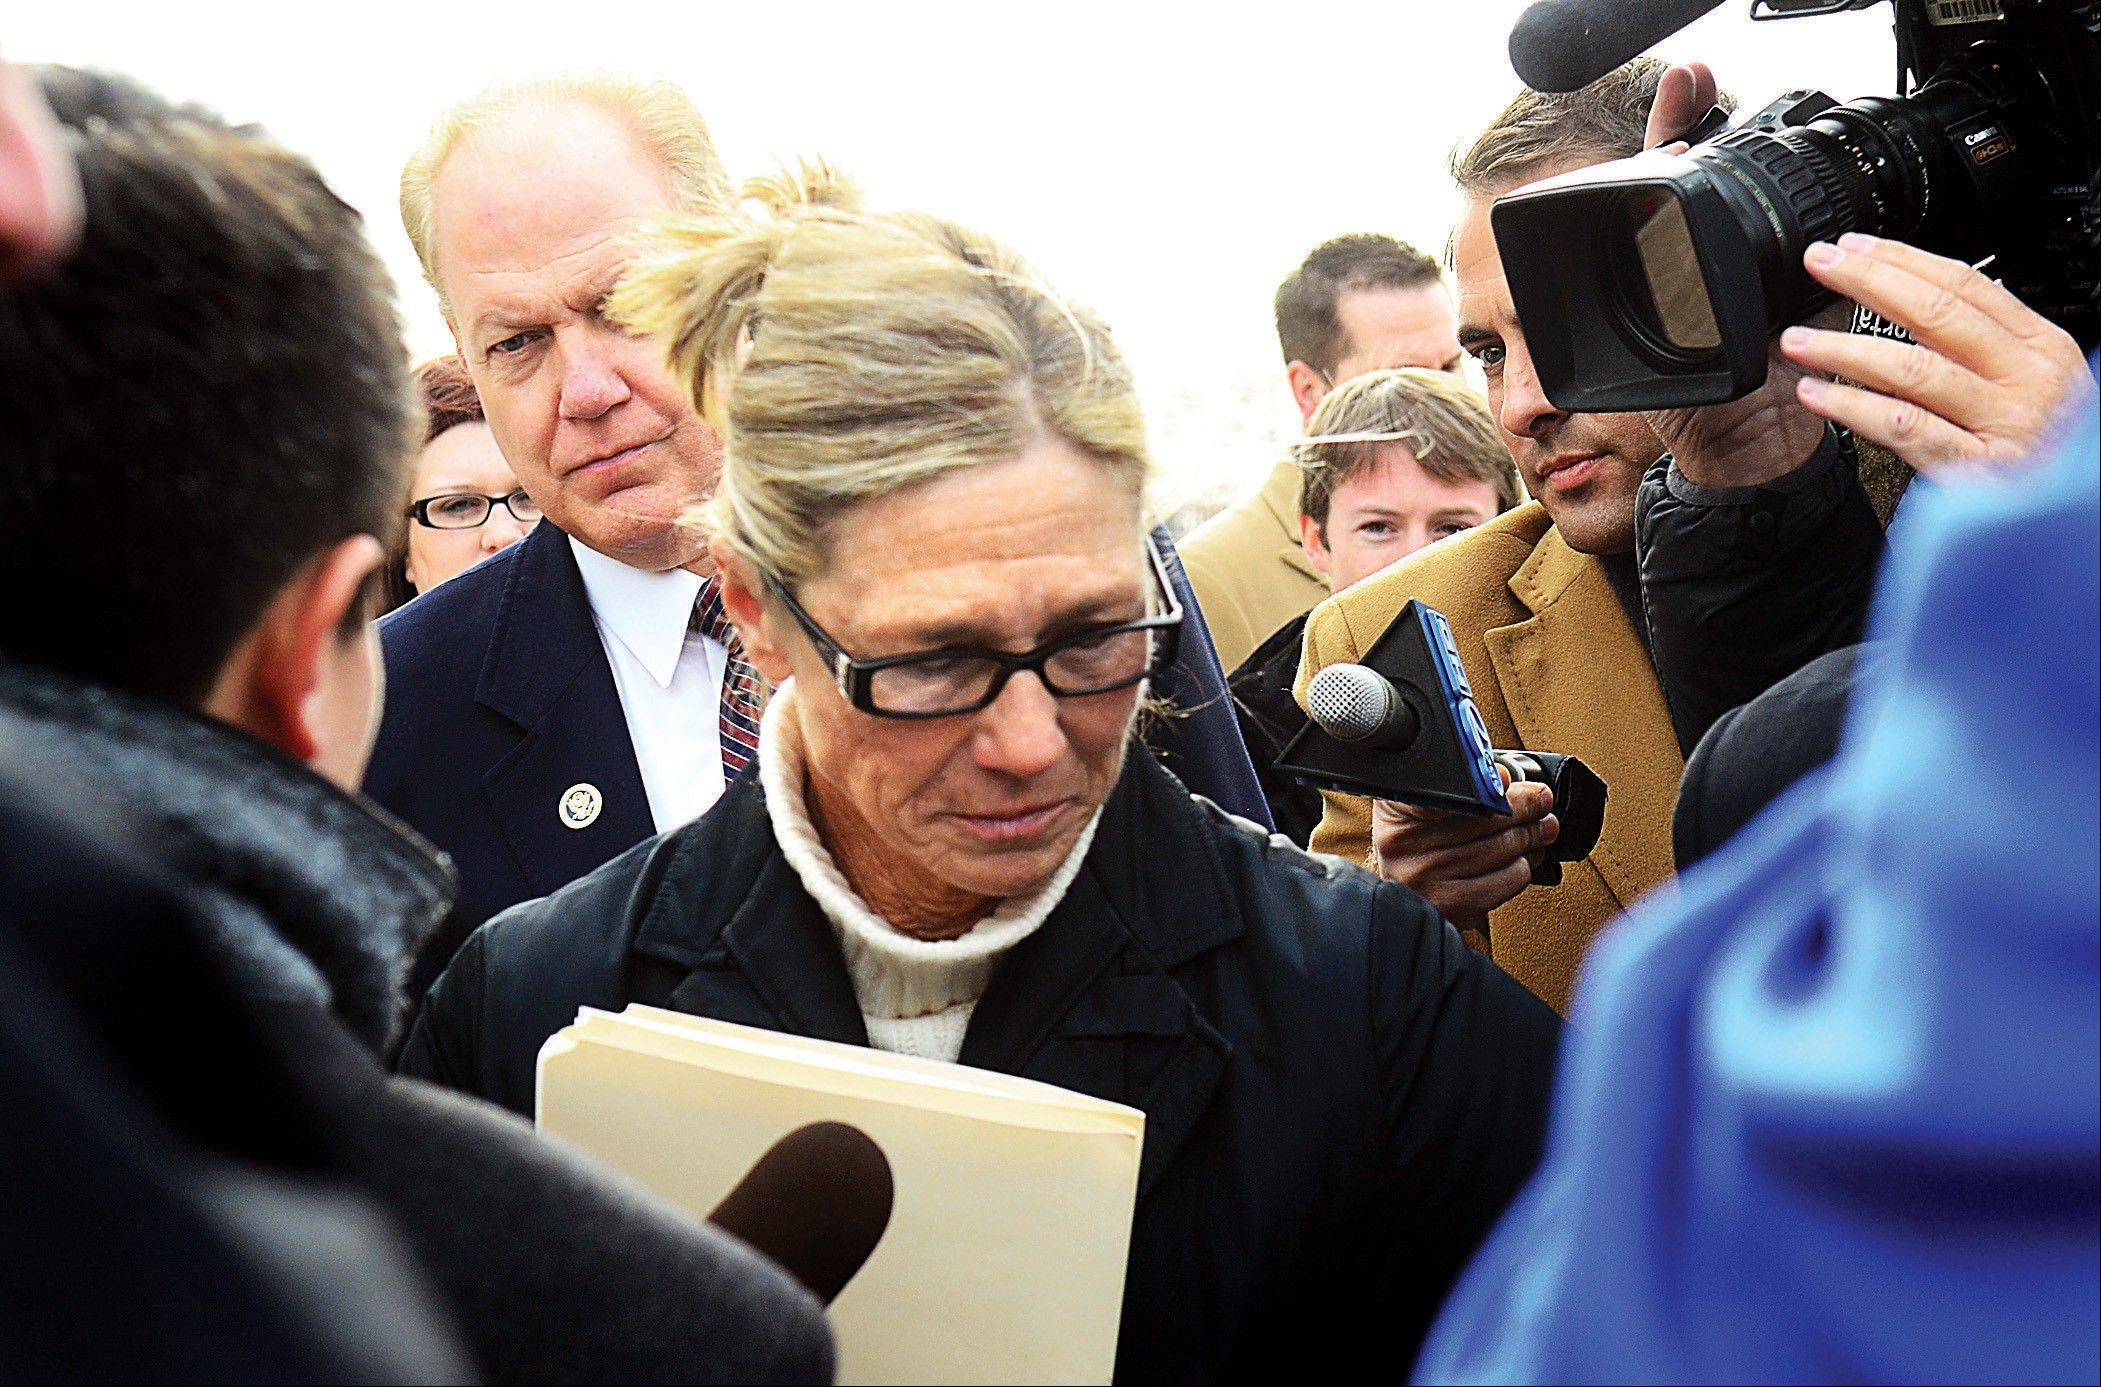 Rita Crundwell walks pass the media outside of the federal courthouse in Rockford on Wednesday. The former comptroller of Dixon, she pleaded guilty to allegations she embezzled more than $50 million from the small city to fund a lavish lifestyle.